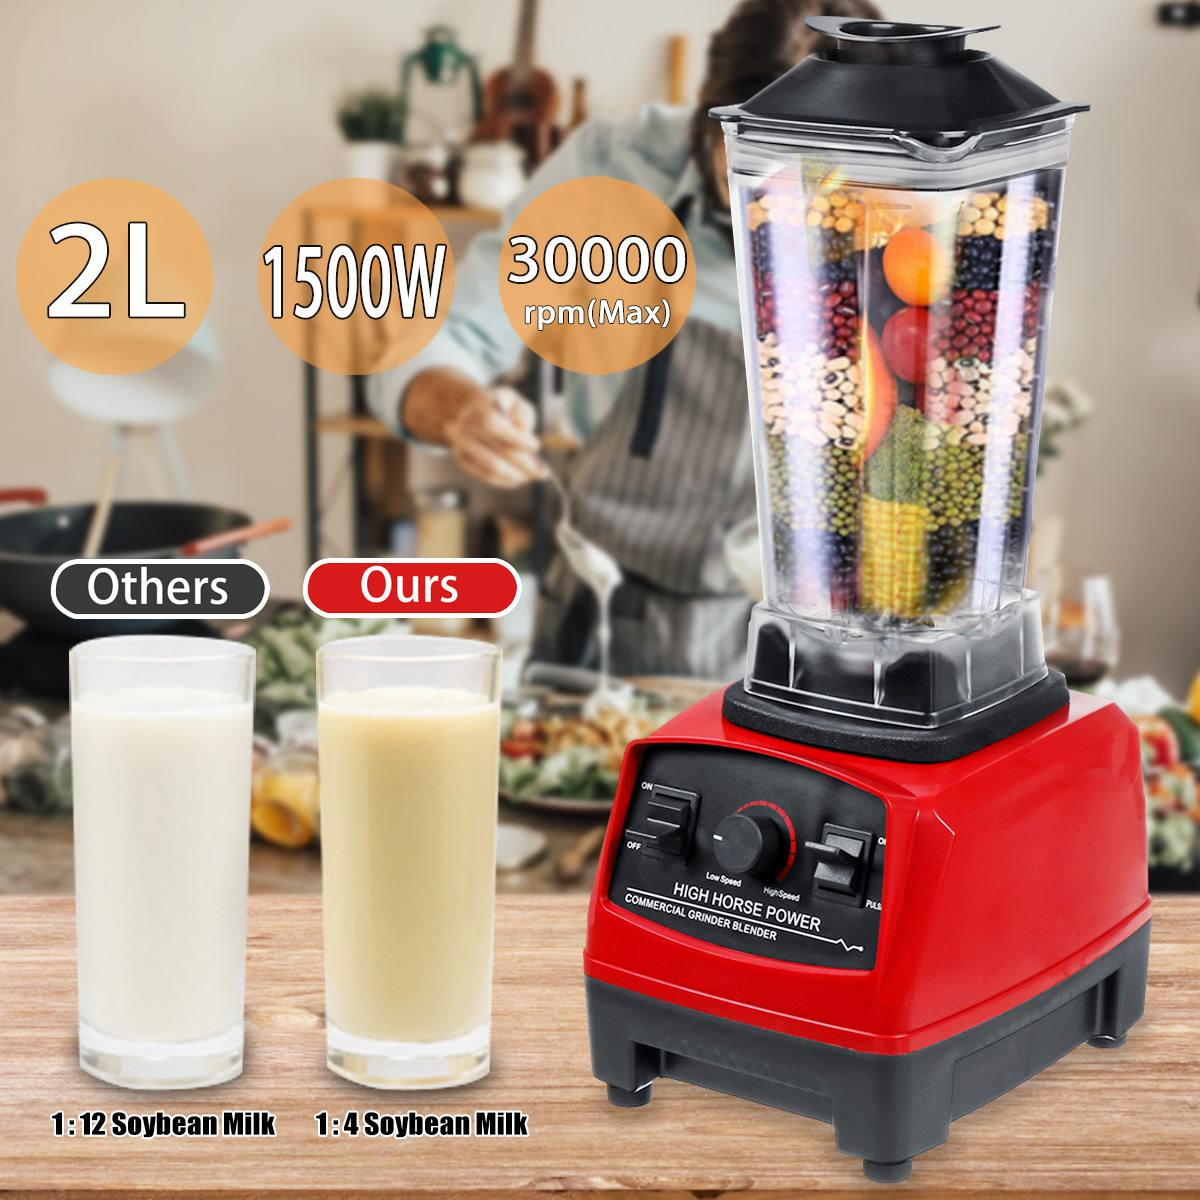 2L 1500W Heavy Duty Commercial Grade Blenders Mixer Juicer High Power Food Processor Ice Smoothie Bar Fruit Blenders Adjustable